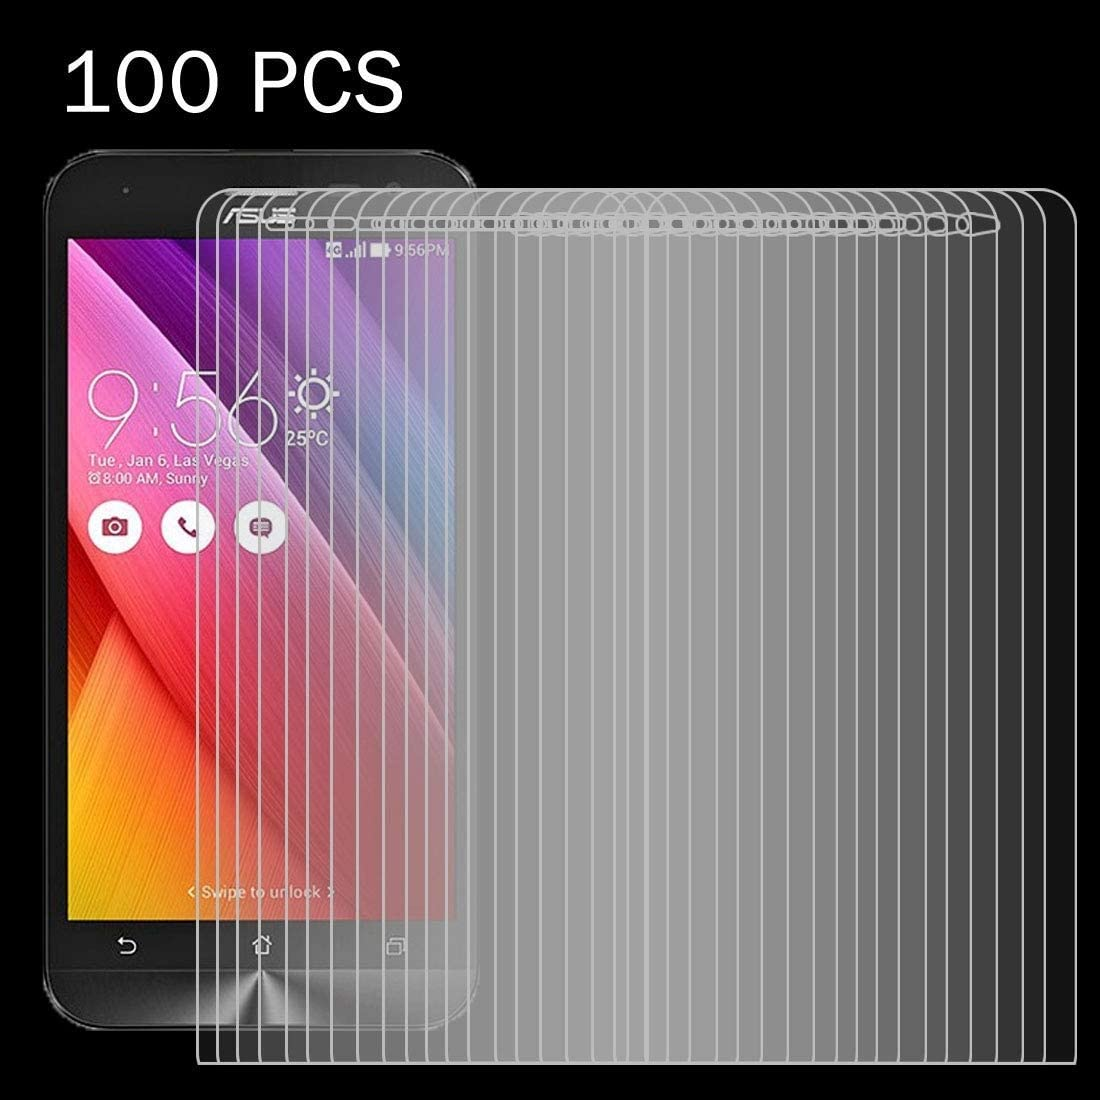 YINZHI Screen Protector Film ZE500KL 0.26mm 9H Surface Hardness 2.5D Explosion-Proof Tempered Glass Screen Film Clear 100 PCS for Asus Zenfone 2 Laser